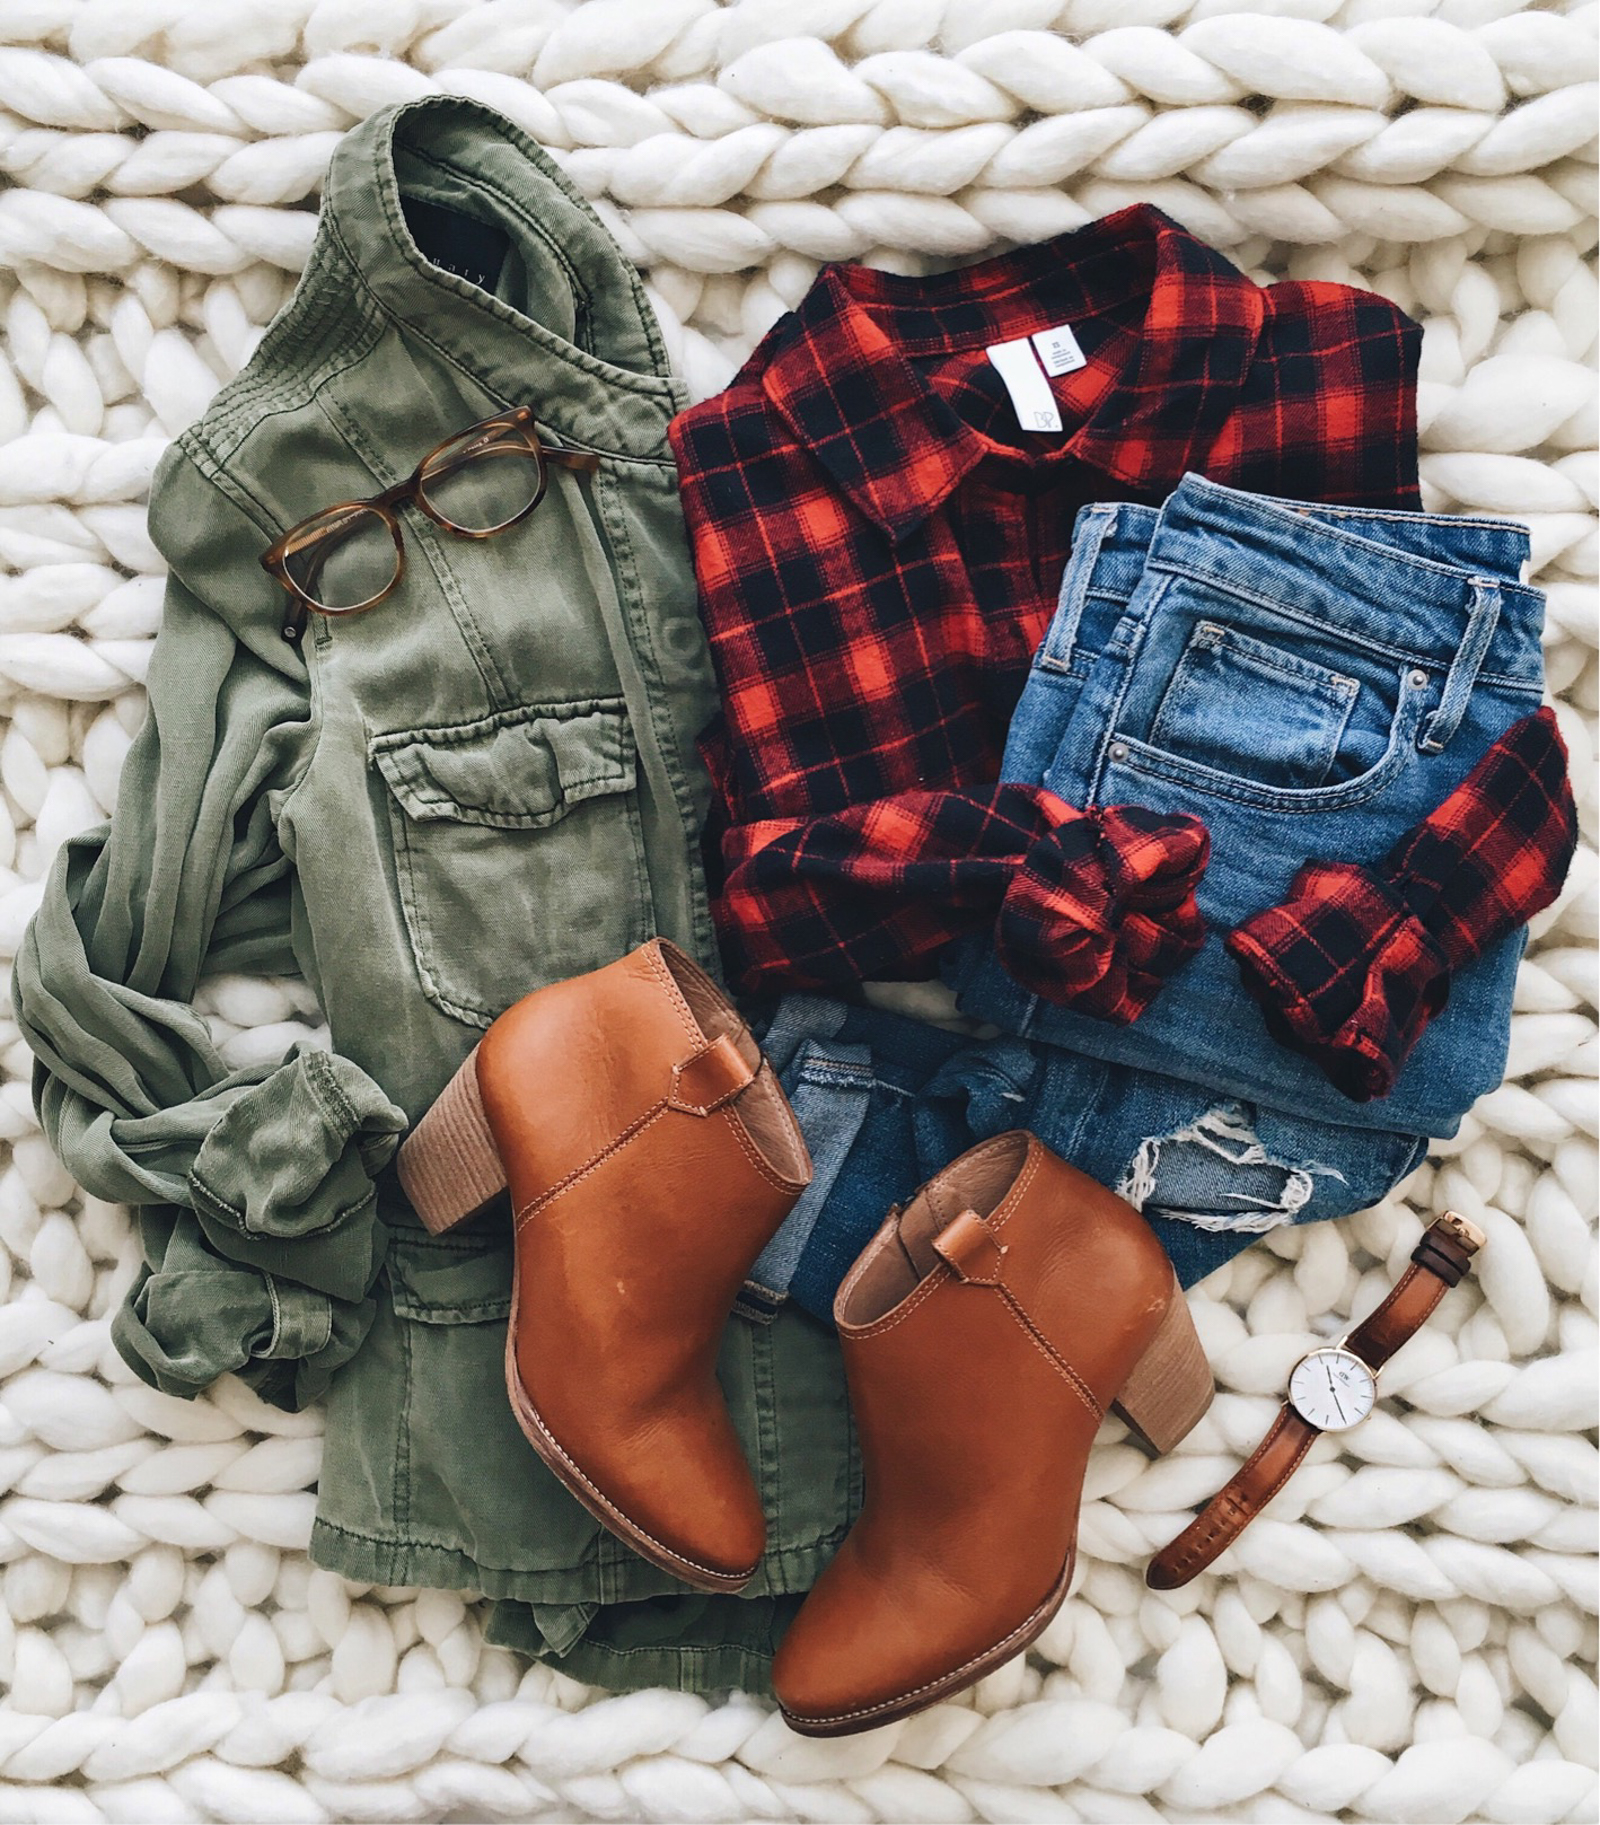 livvyland-blog-olivia-watson-instagram-roundup-austin-texas-cozy-winter-outfit-buffalo-plaid-utility-jacket